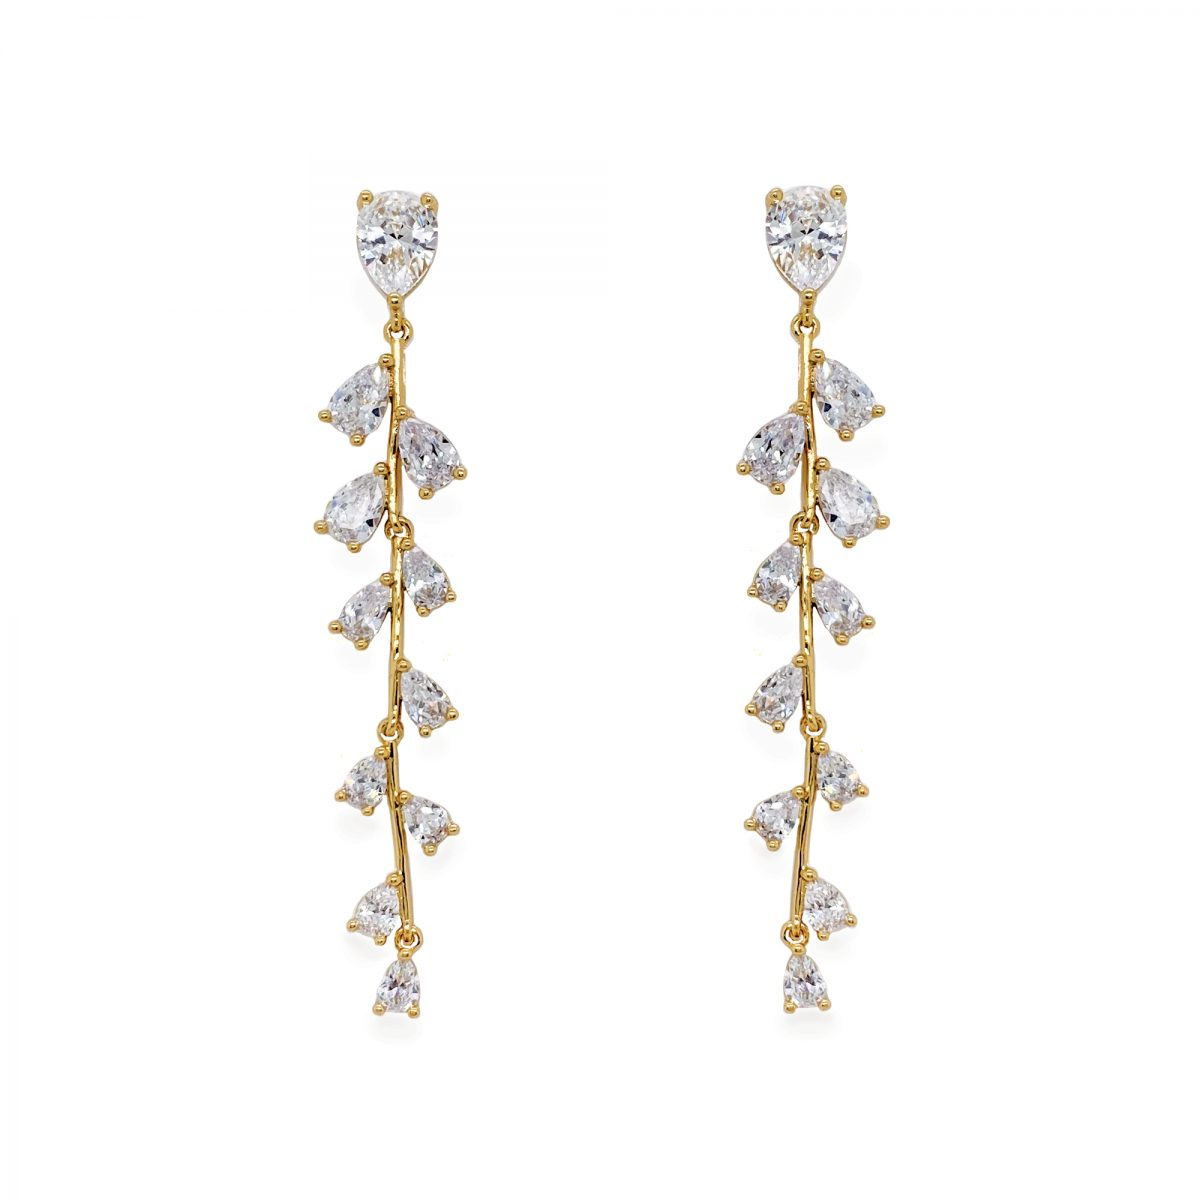 Ivory and Co Willow Drop Earrings - Gold 1